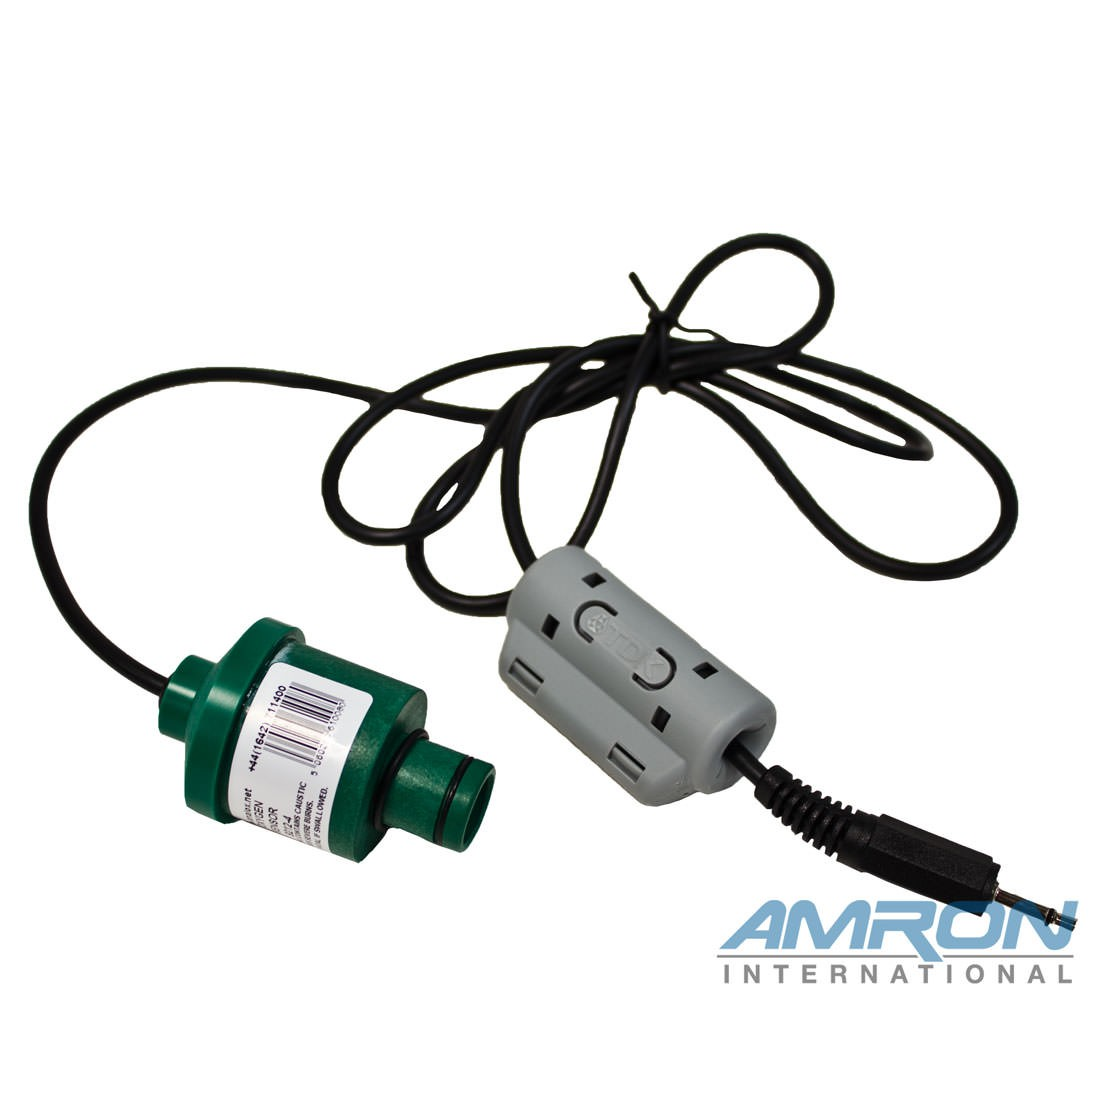 Analox Replacement Oxygen (O2) Sensor (0-100%) Includes Hard Wired Lead with Jack Plug for the 101D2 Portable Oxygen Monitor 9100-9212-4